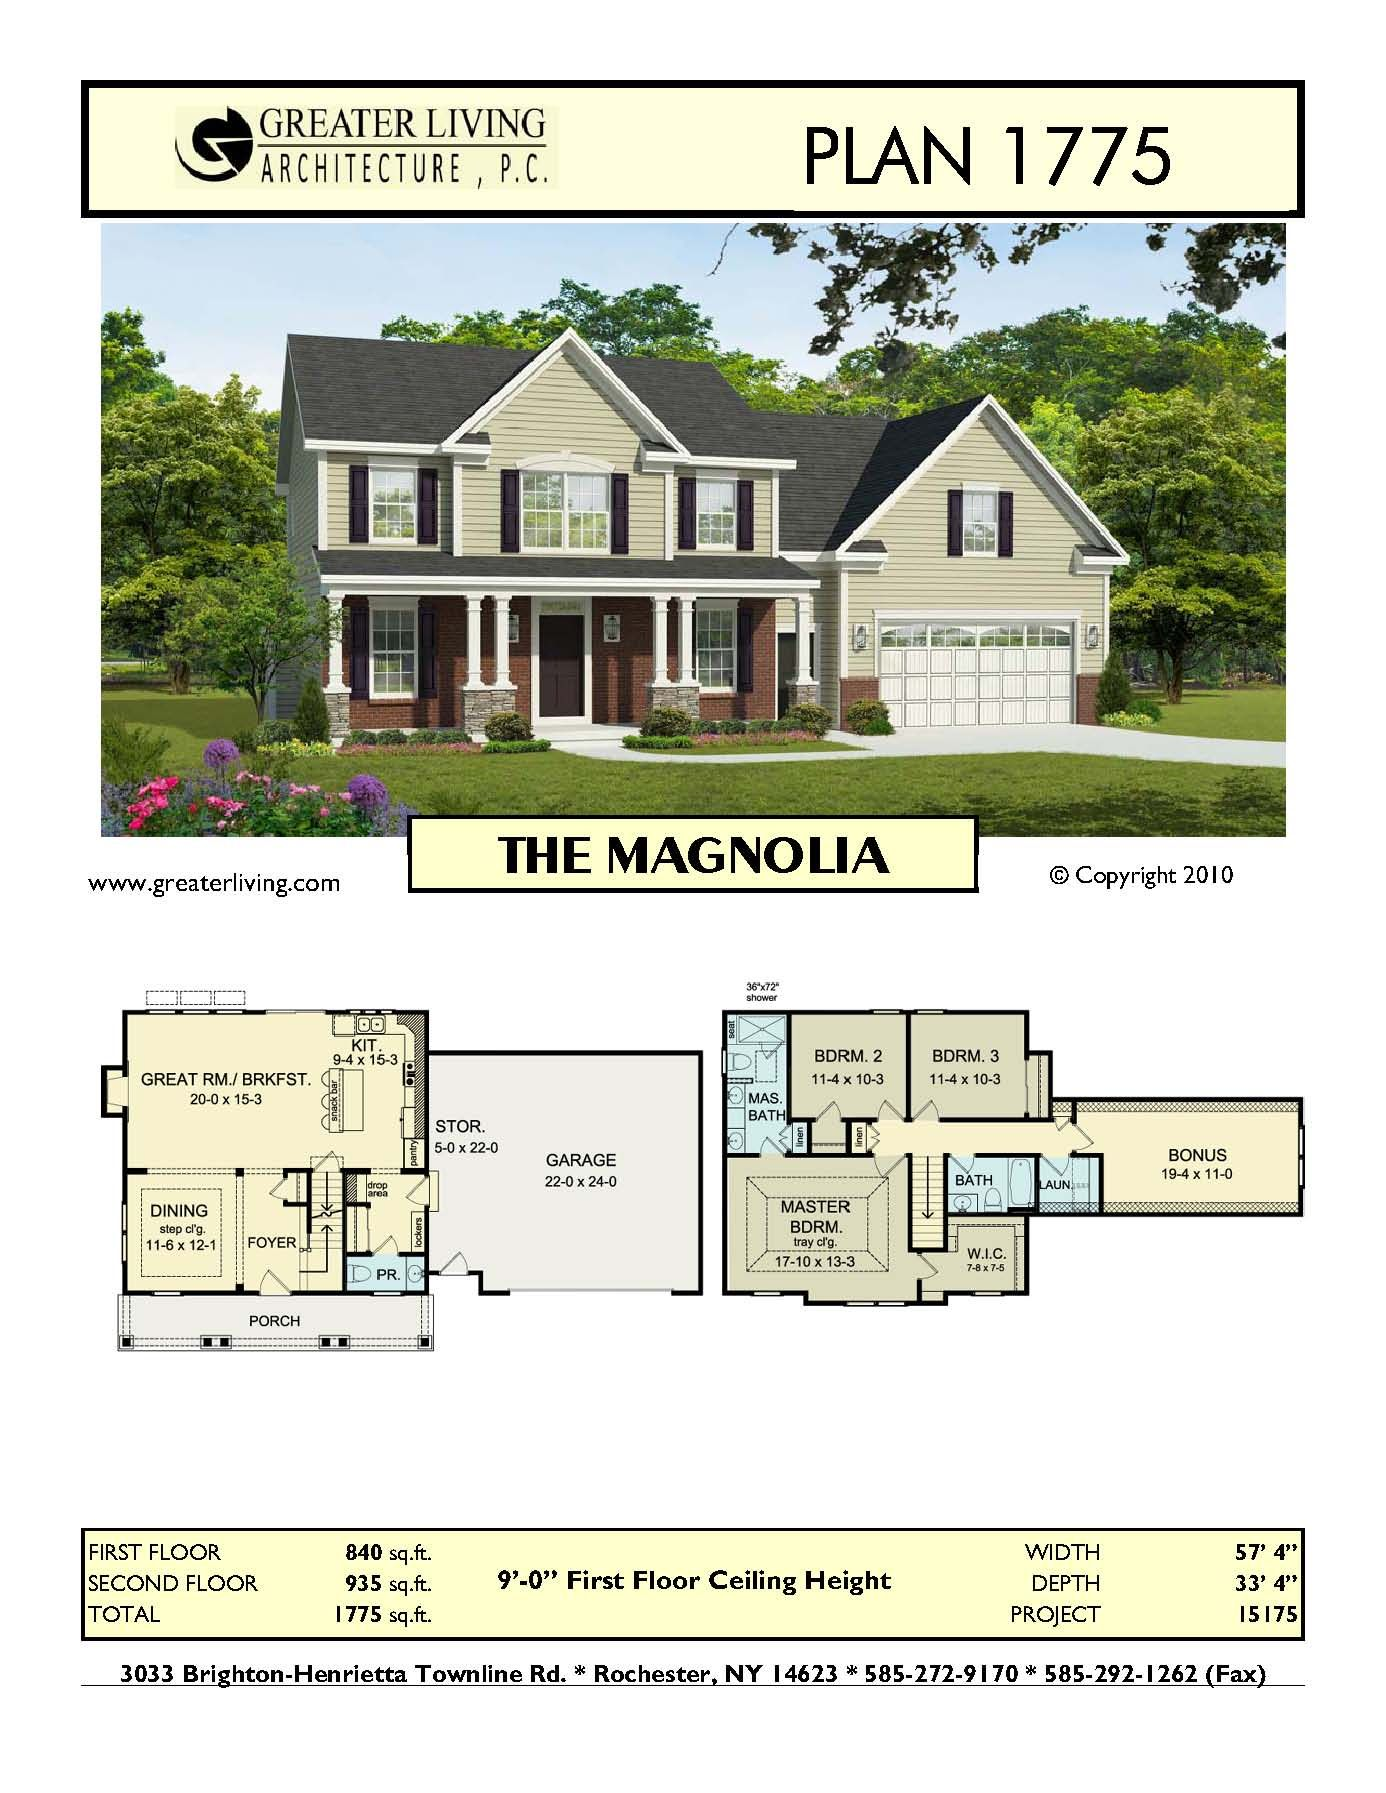 Plan 1775 the magnolia house plans two story house plans 2 story